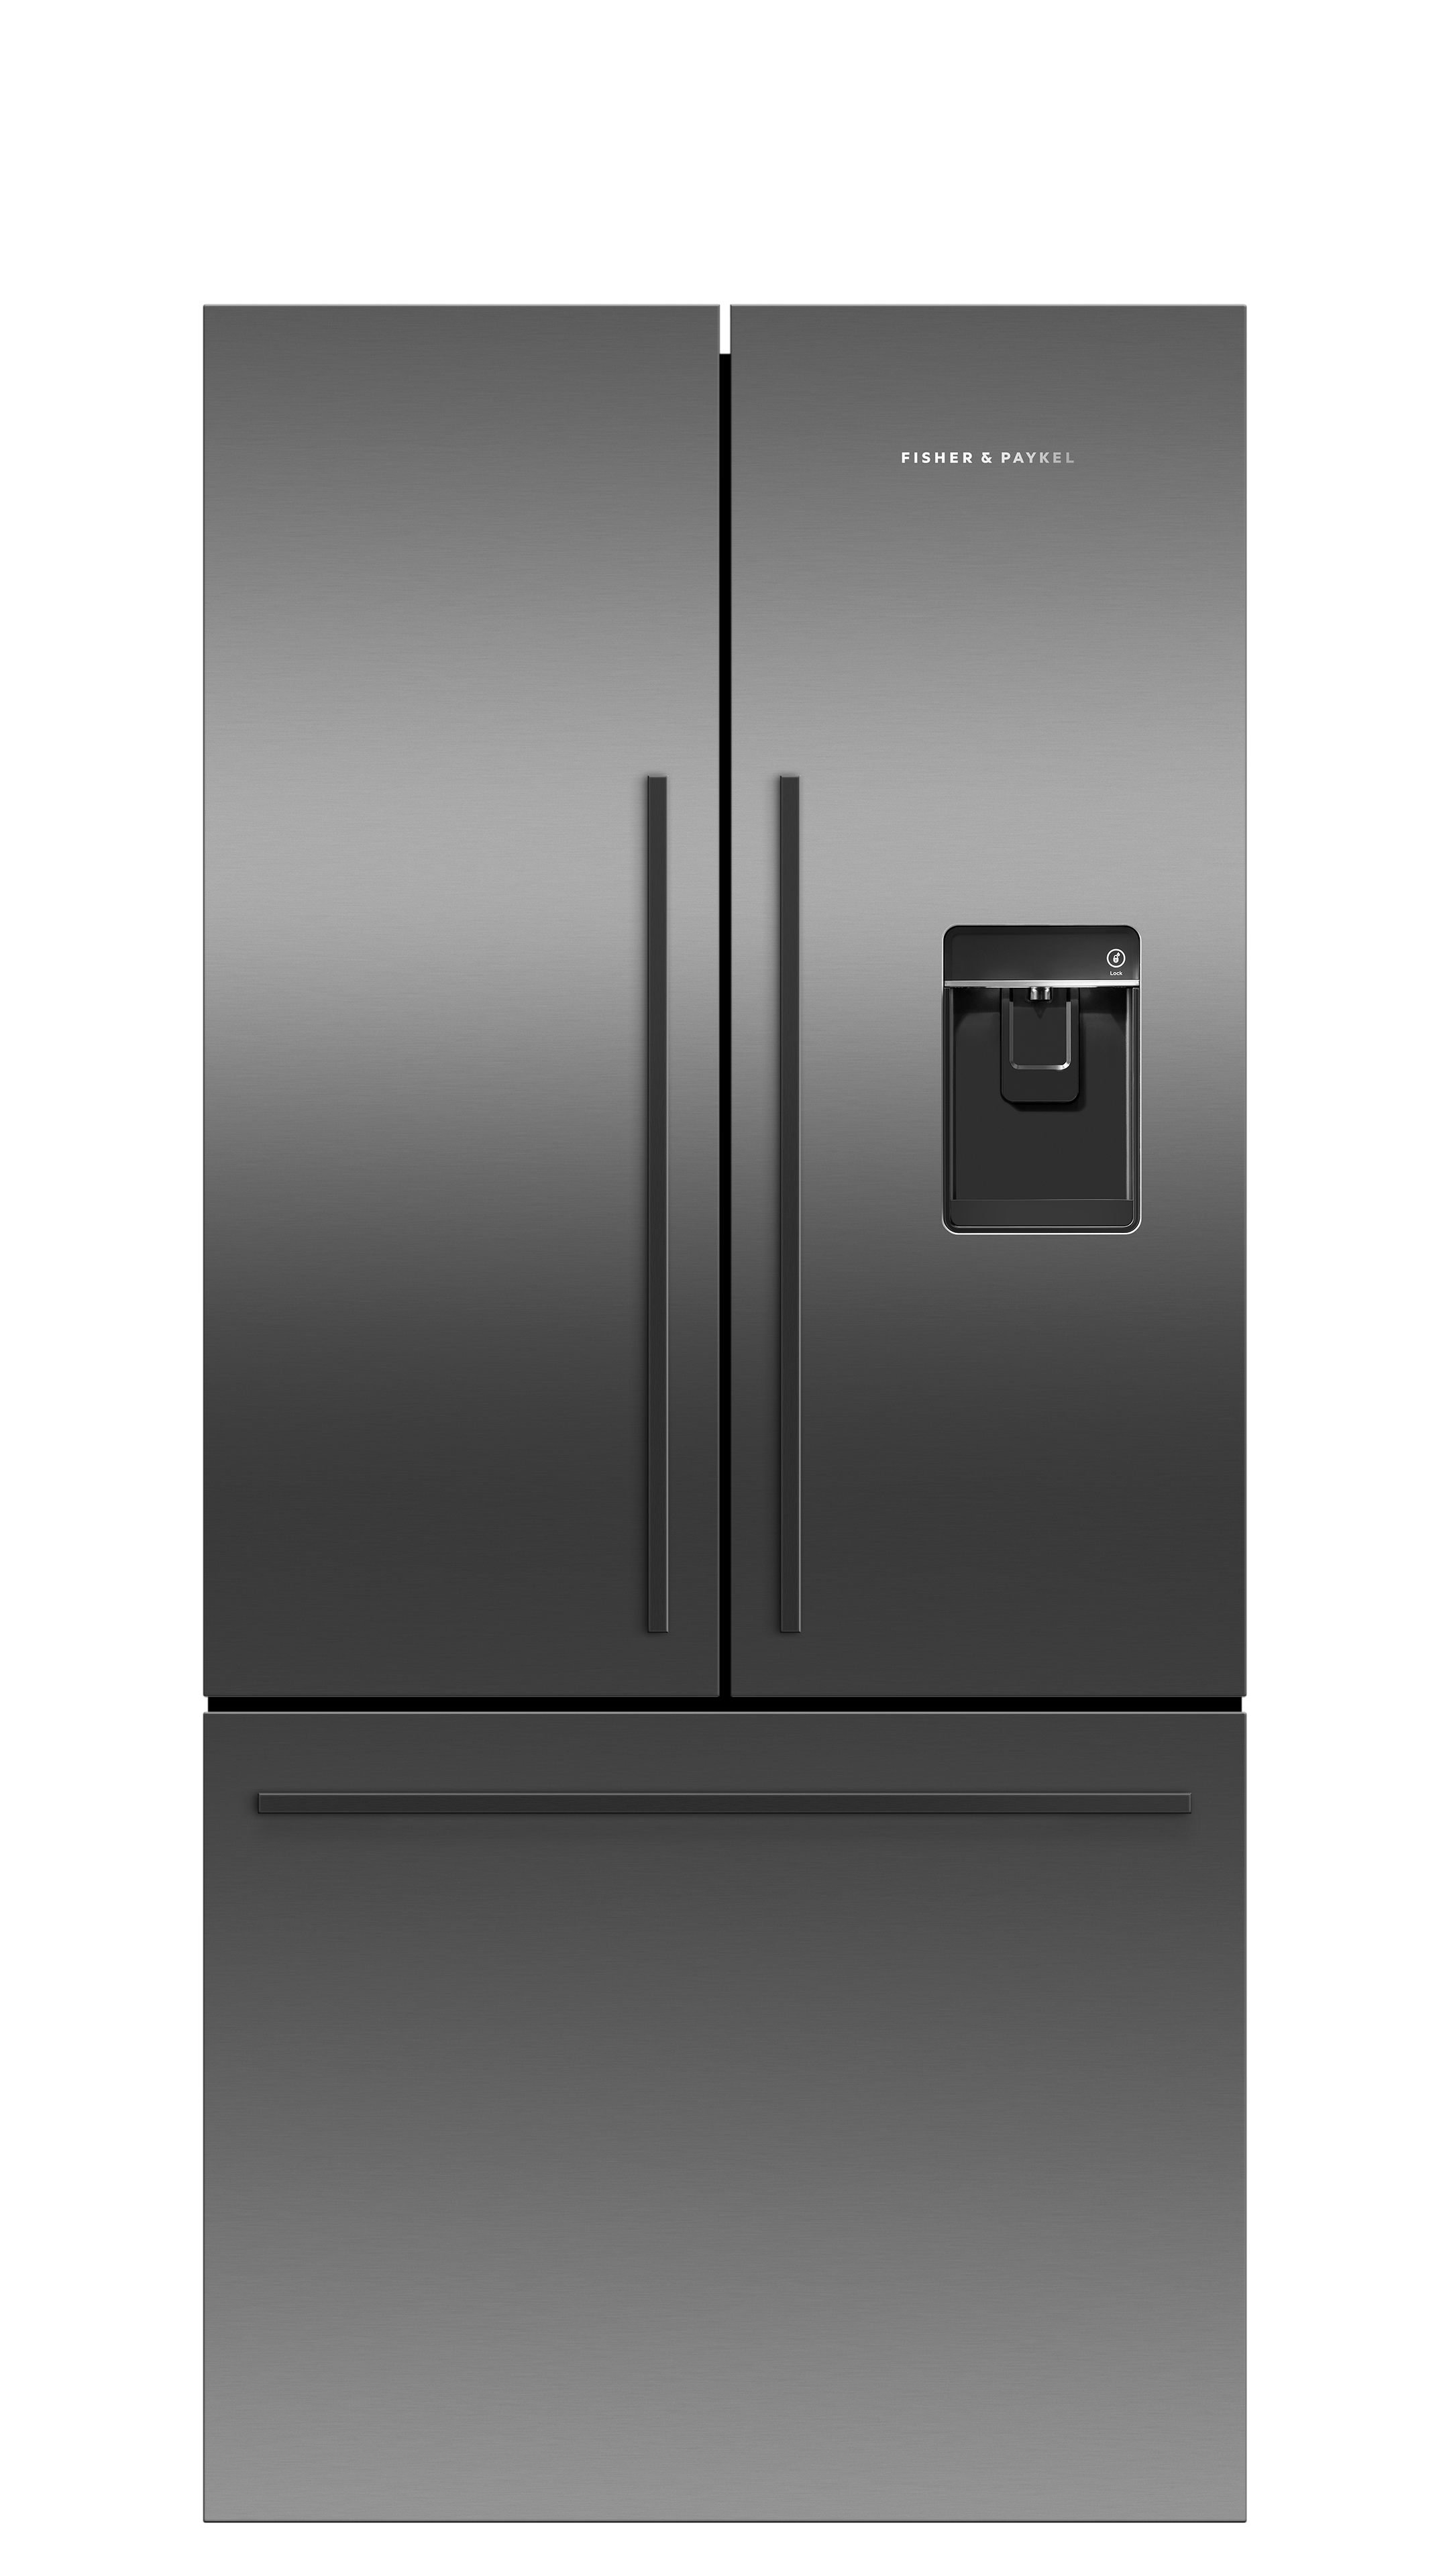 Model: RF170ADUSB5 | Fisher and Paykel Black Stainless Steel French Door Refrigerator, 17 cu ft, Ice & Water